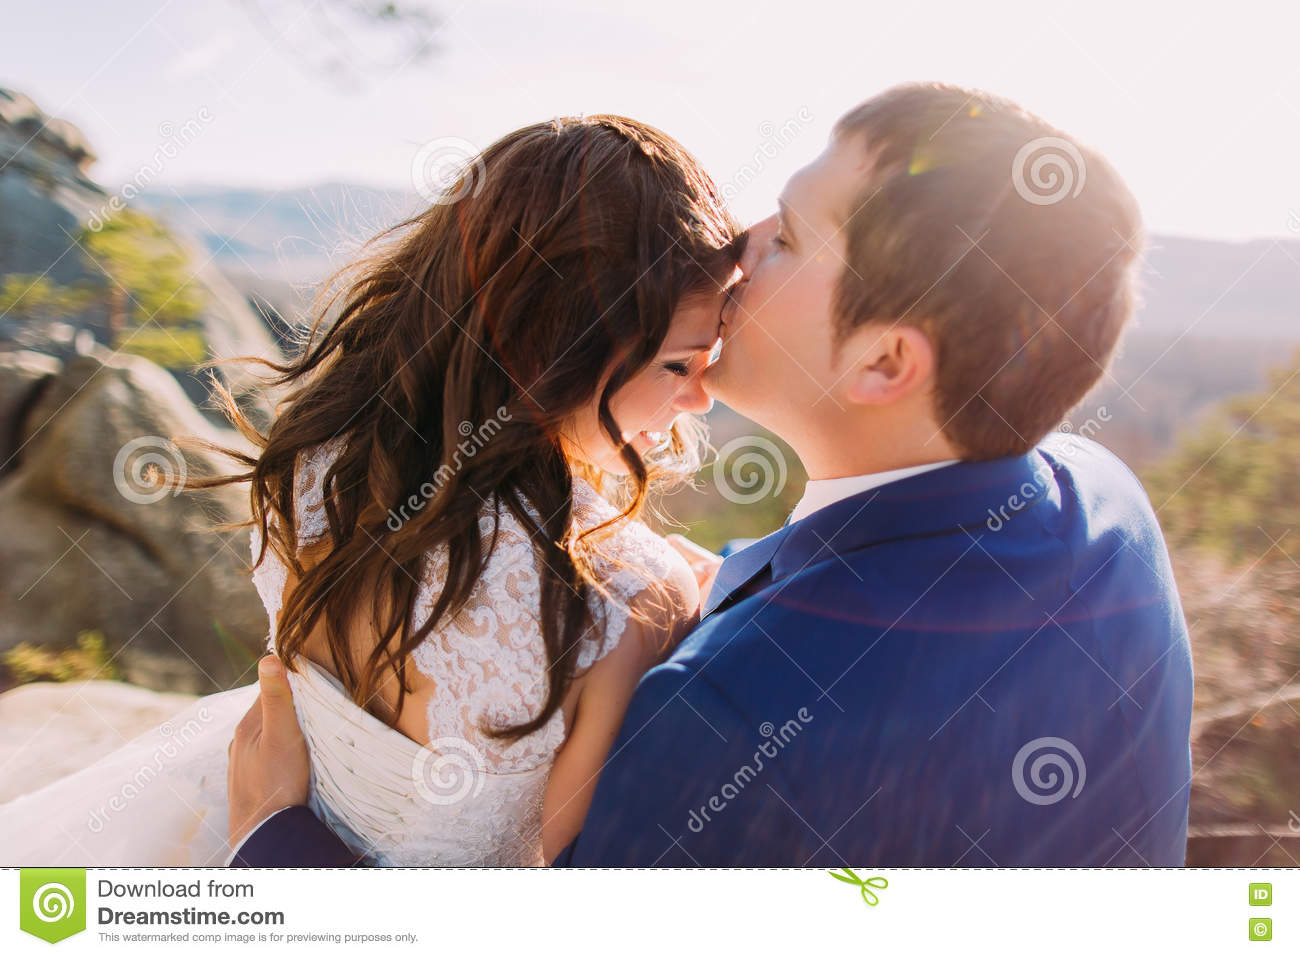 Romantic Moment Of Newlywed Couple Happy Husband Kissing His New